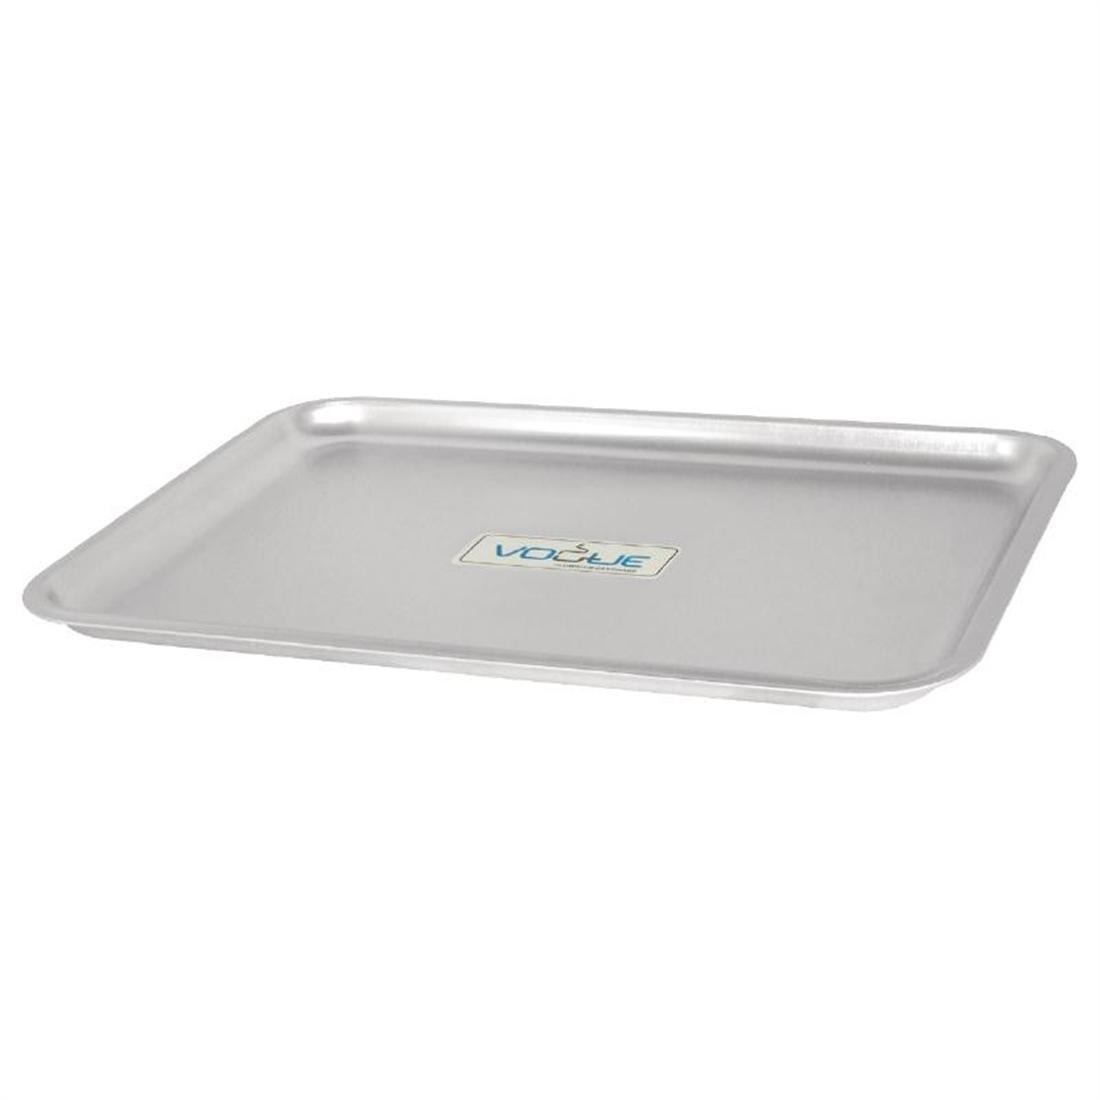 Vogue Aluminium Baking Tray 370 x 265mm - Each - K443